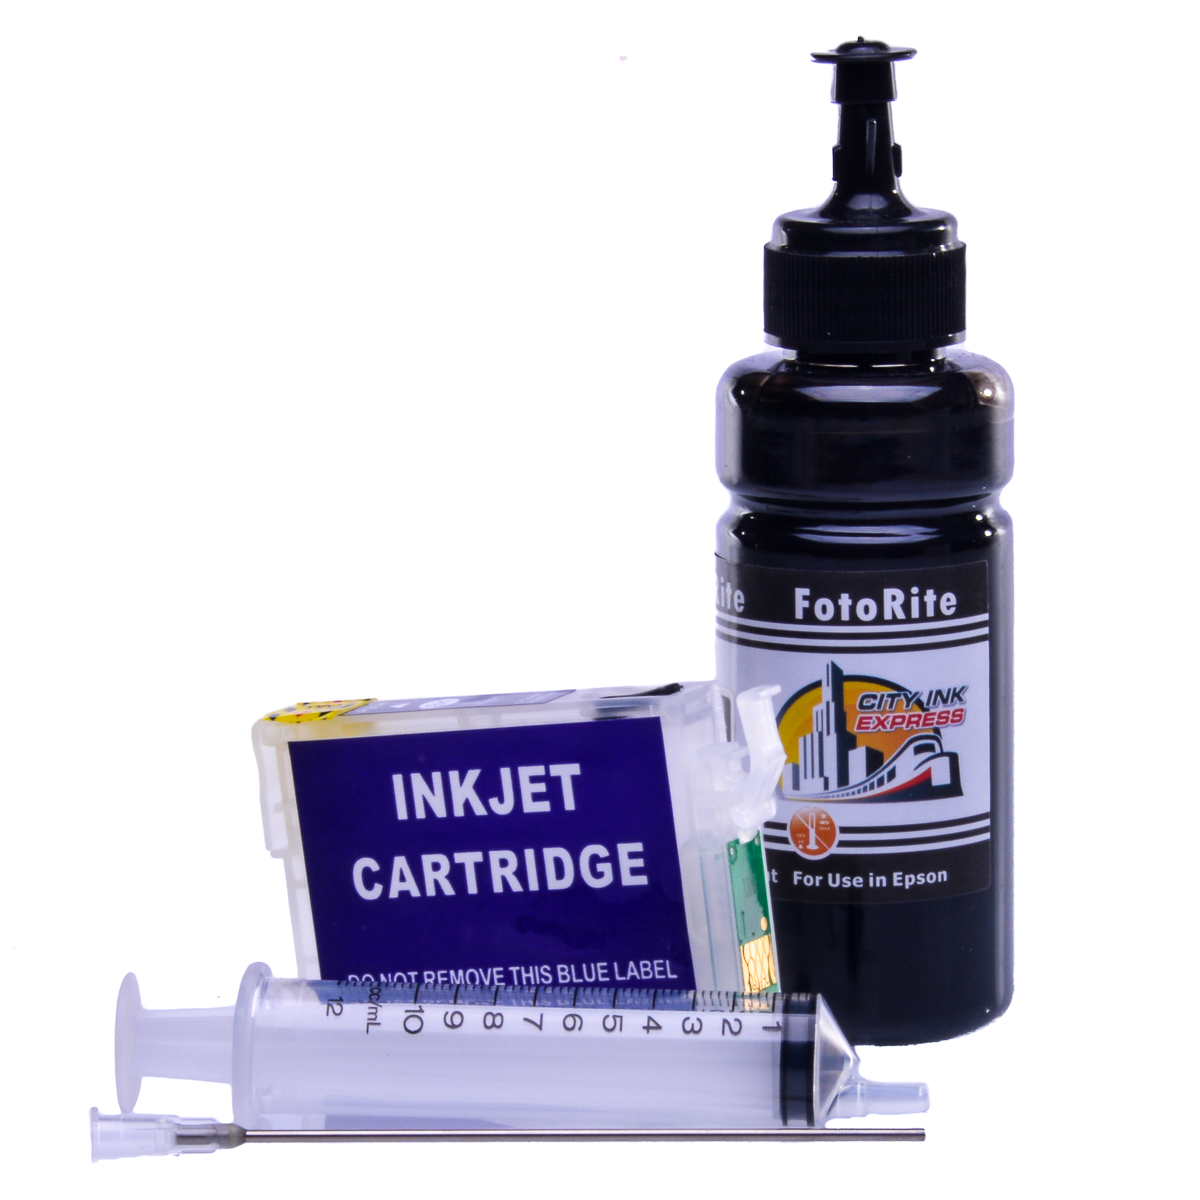 Refillable pigment Cheap printer cartridges for Epson XP-245 C13T29814010 T2981 Black